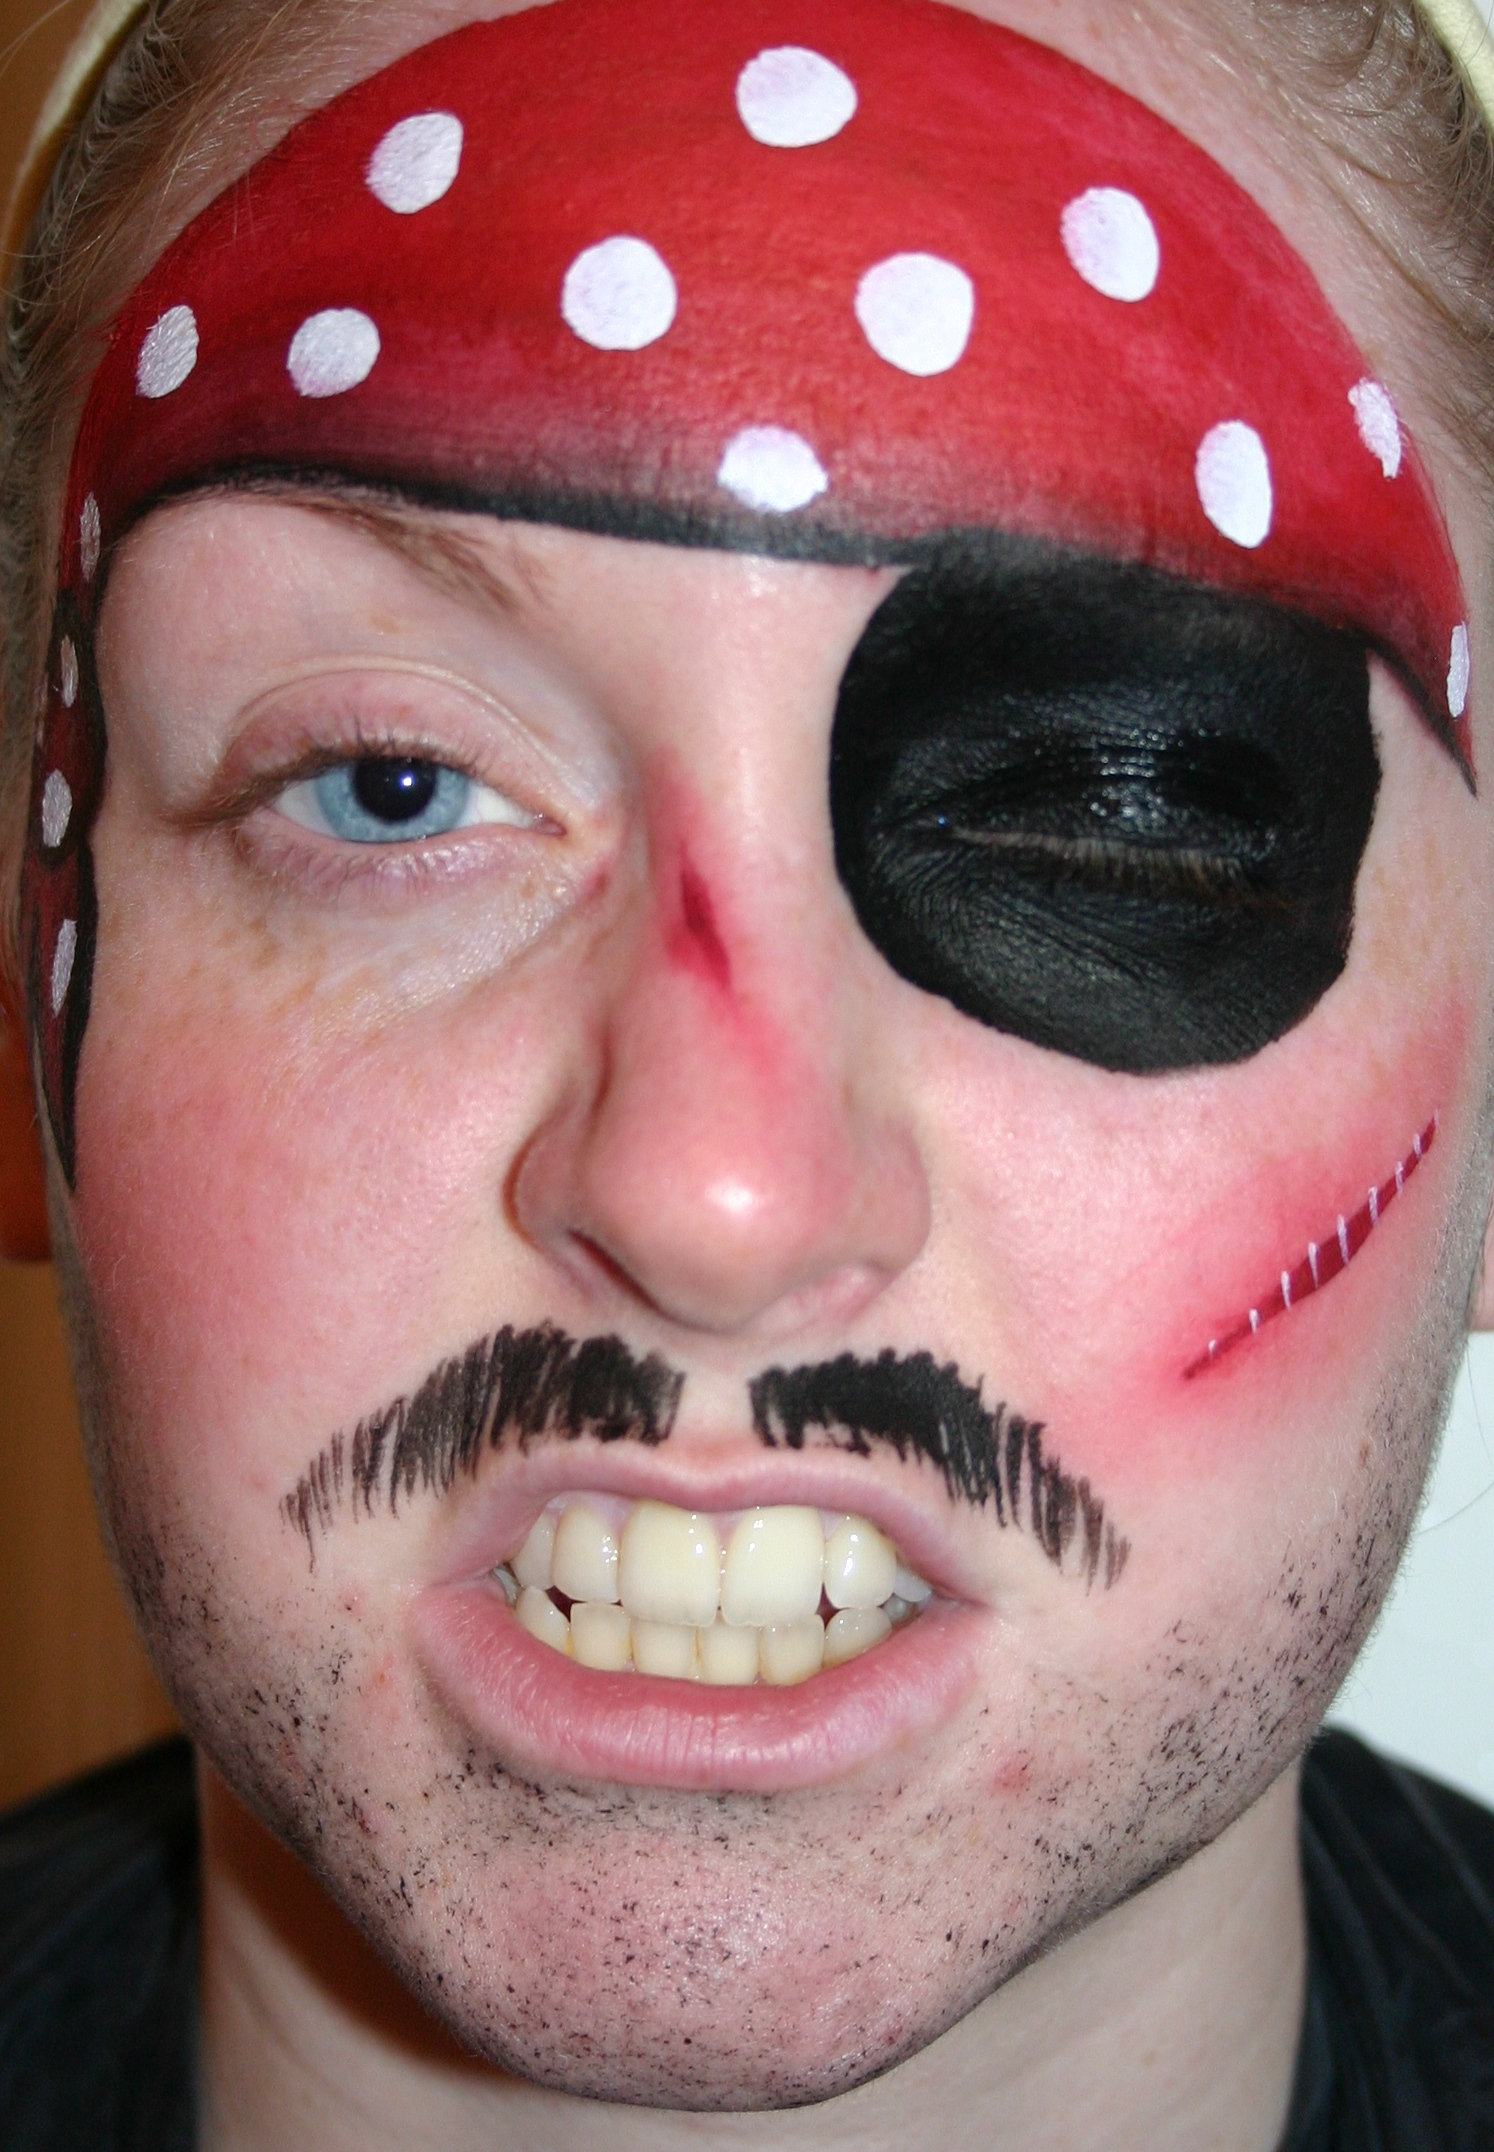 pirate-painted-by-professional-face-painter-daniella-wood